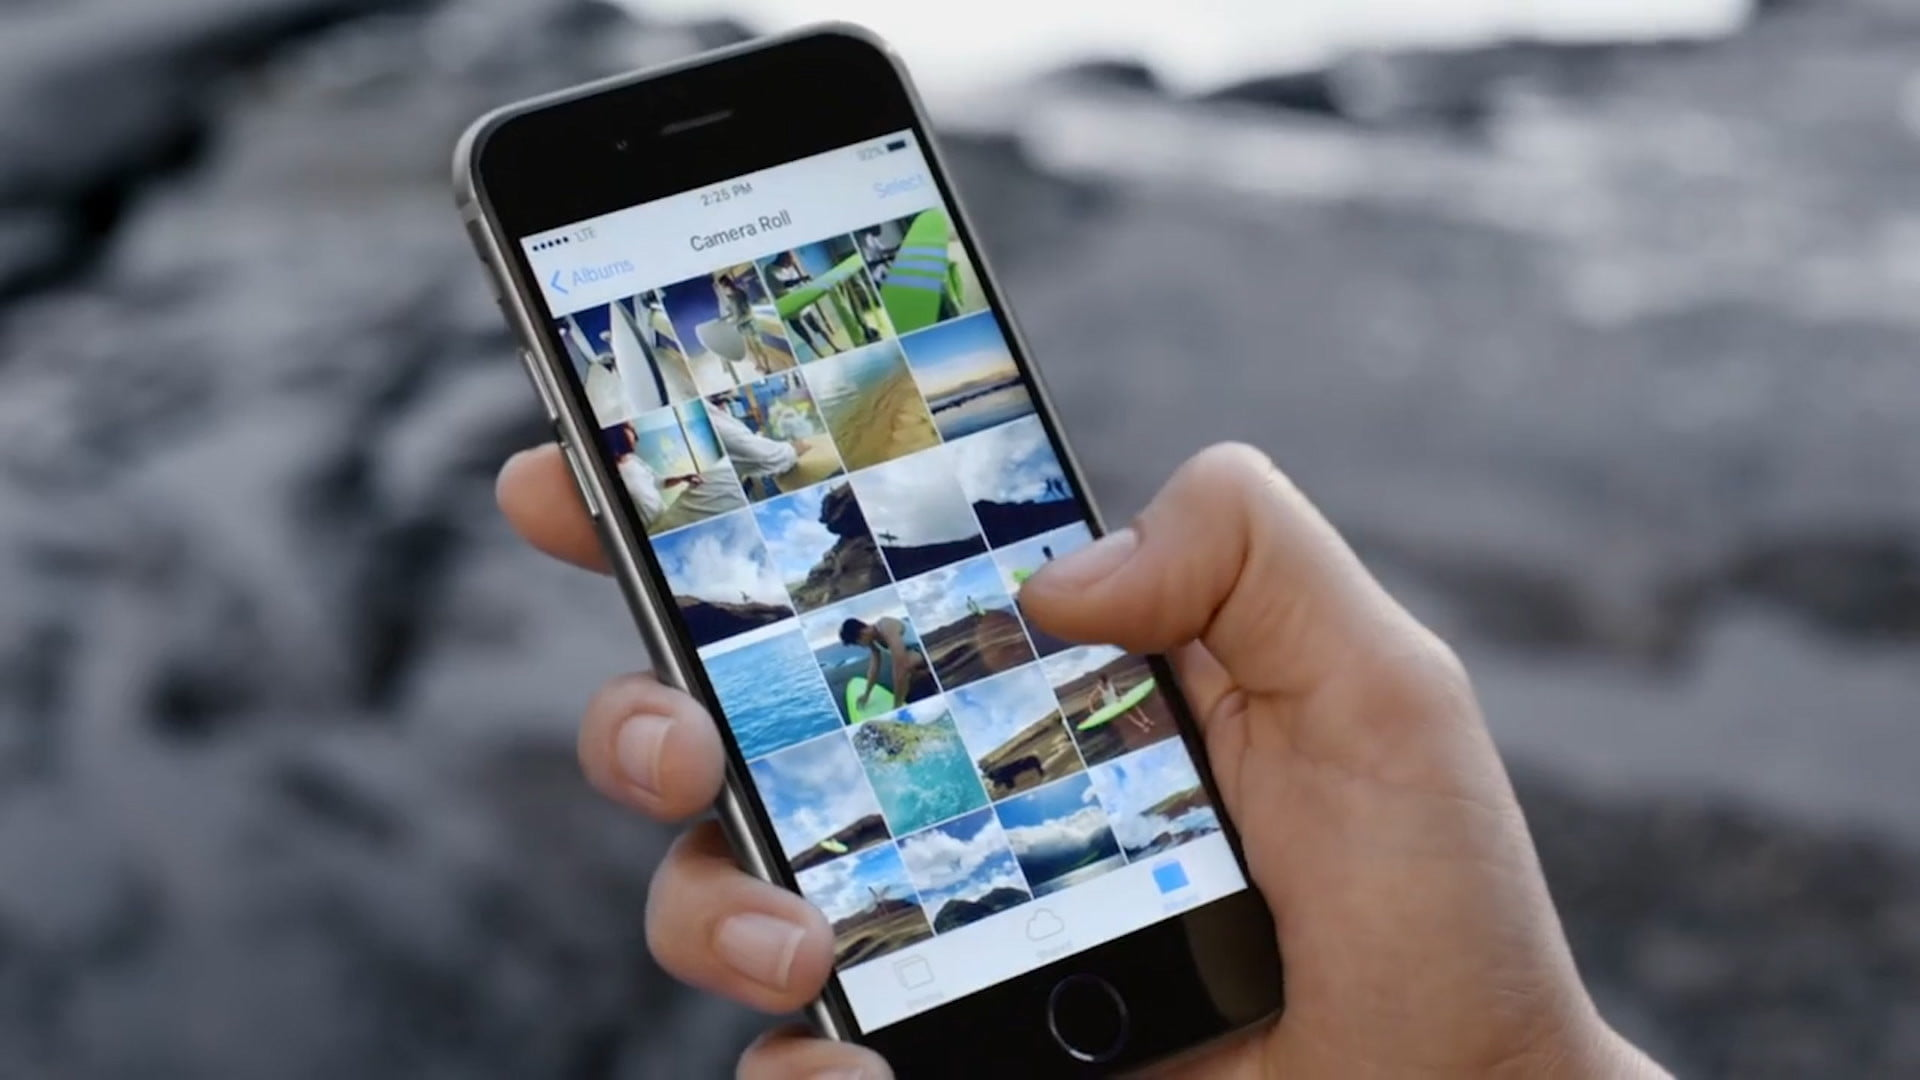 how to delete photos on iphone 5 from computer